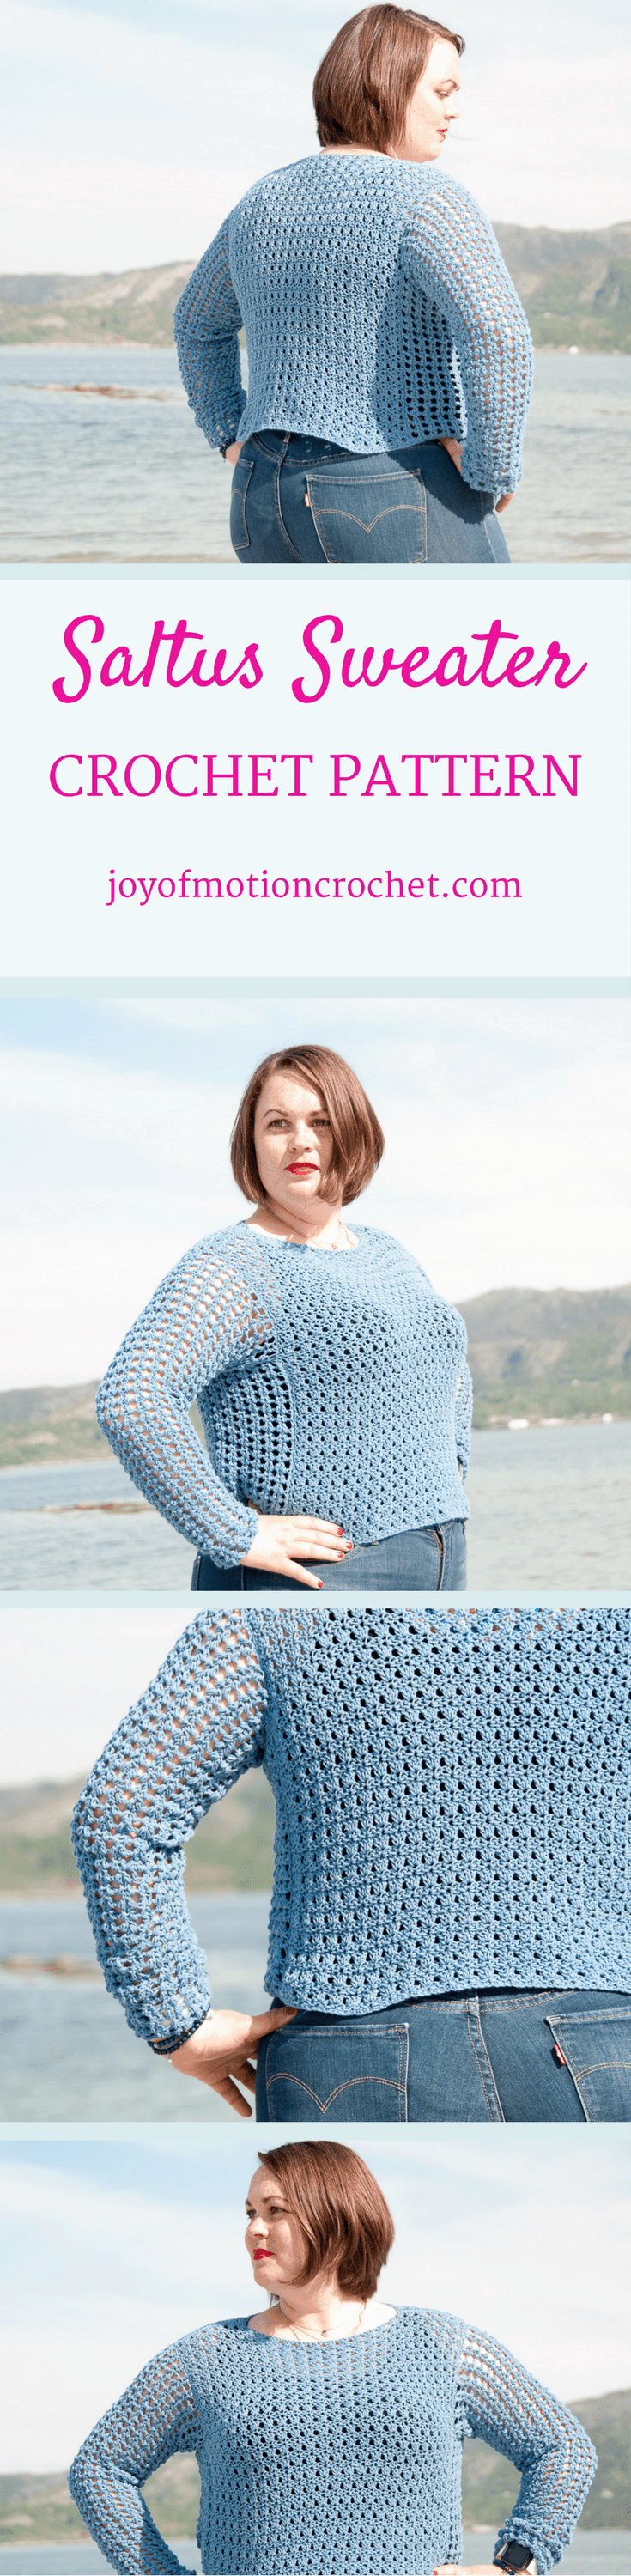 The Saltus Sweater a crochet pattern. Woman's sweater crochet pattern with skill level easy. Make this fashionable crochet sweater with you own hook & yarn. Sweater crochet pattern easy for her . Crochet sweater | woman's crochet sweater | crochet pattern for her | fashionable crochet sweater | interesting crochet sweater | click to learn more or repin to save it forever. Spring crochet sweater.